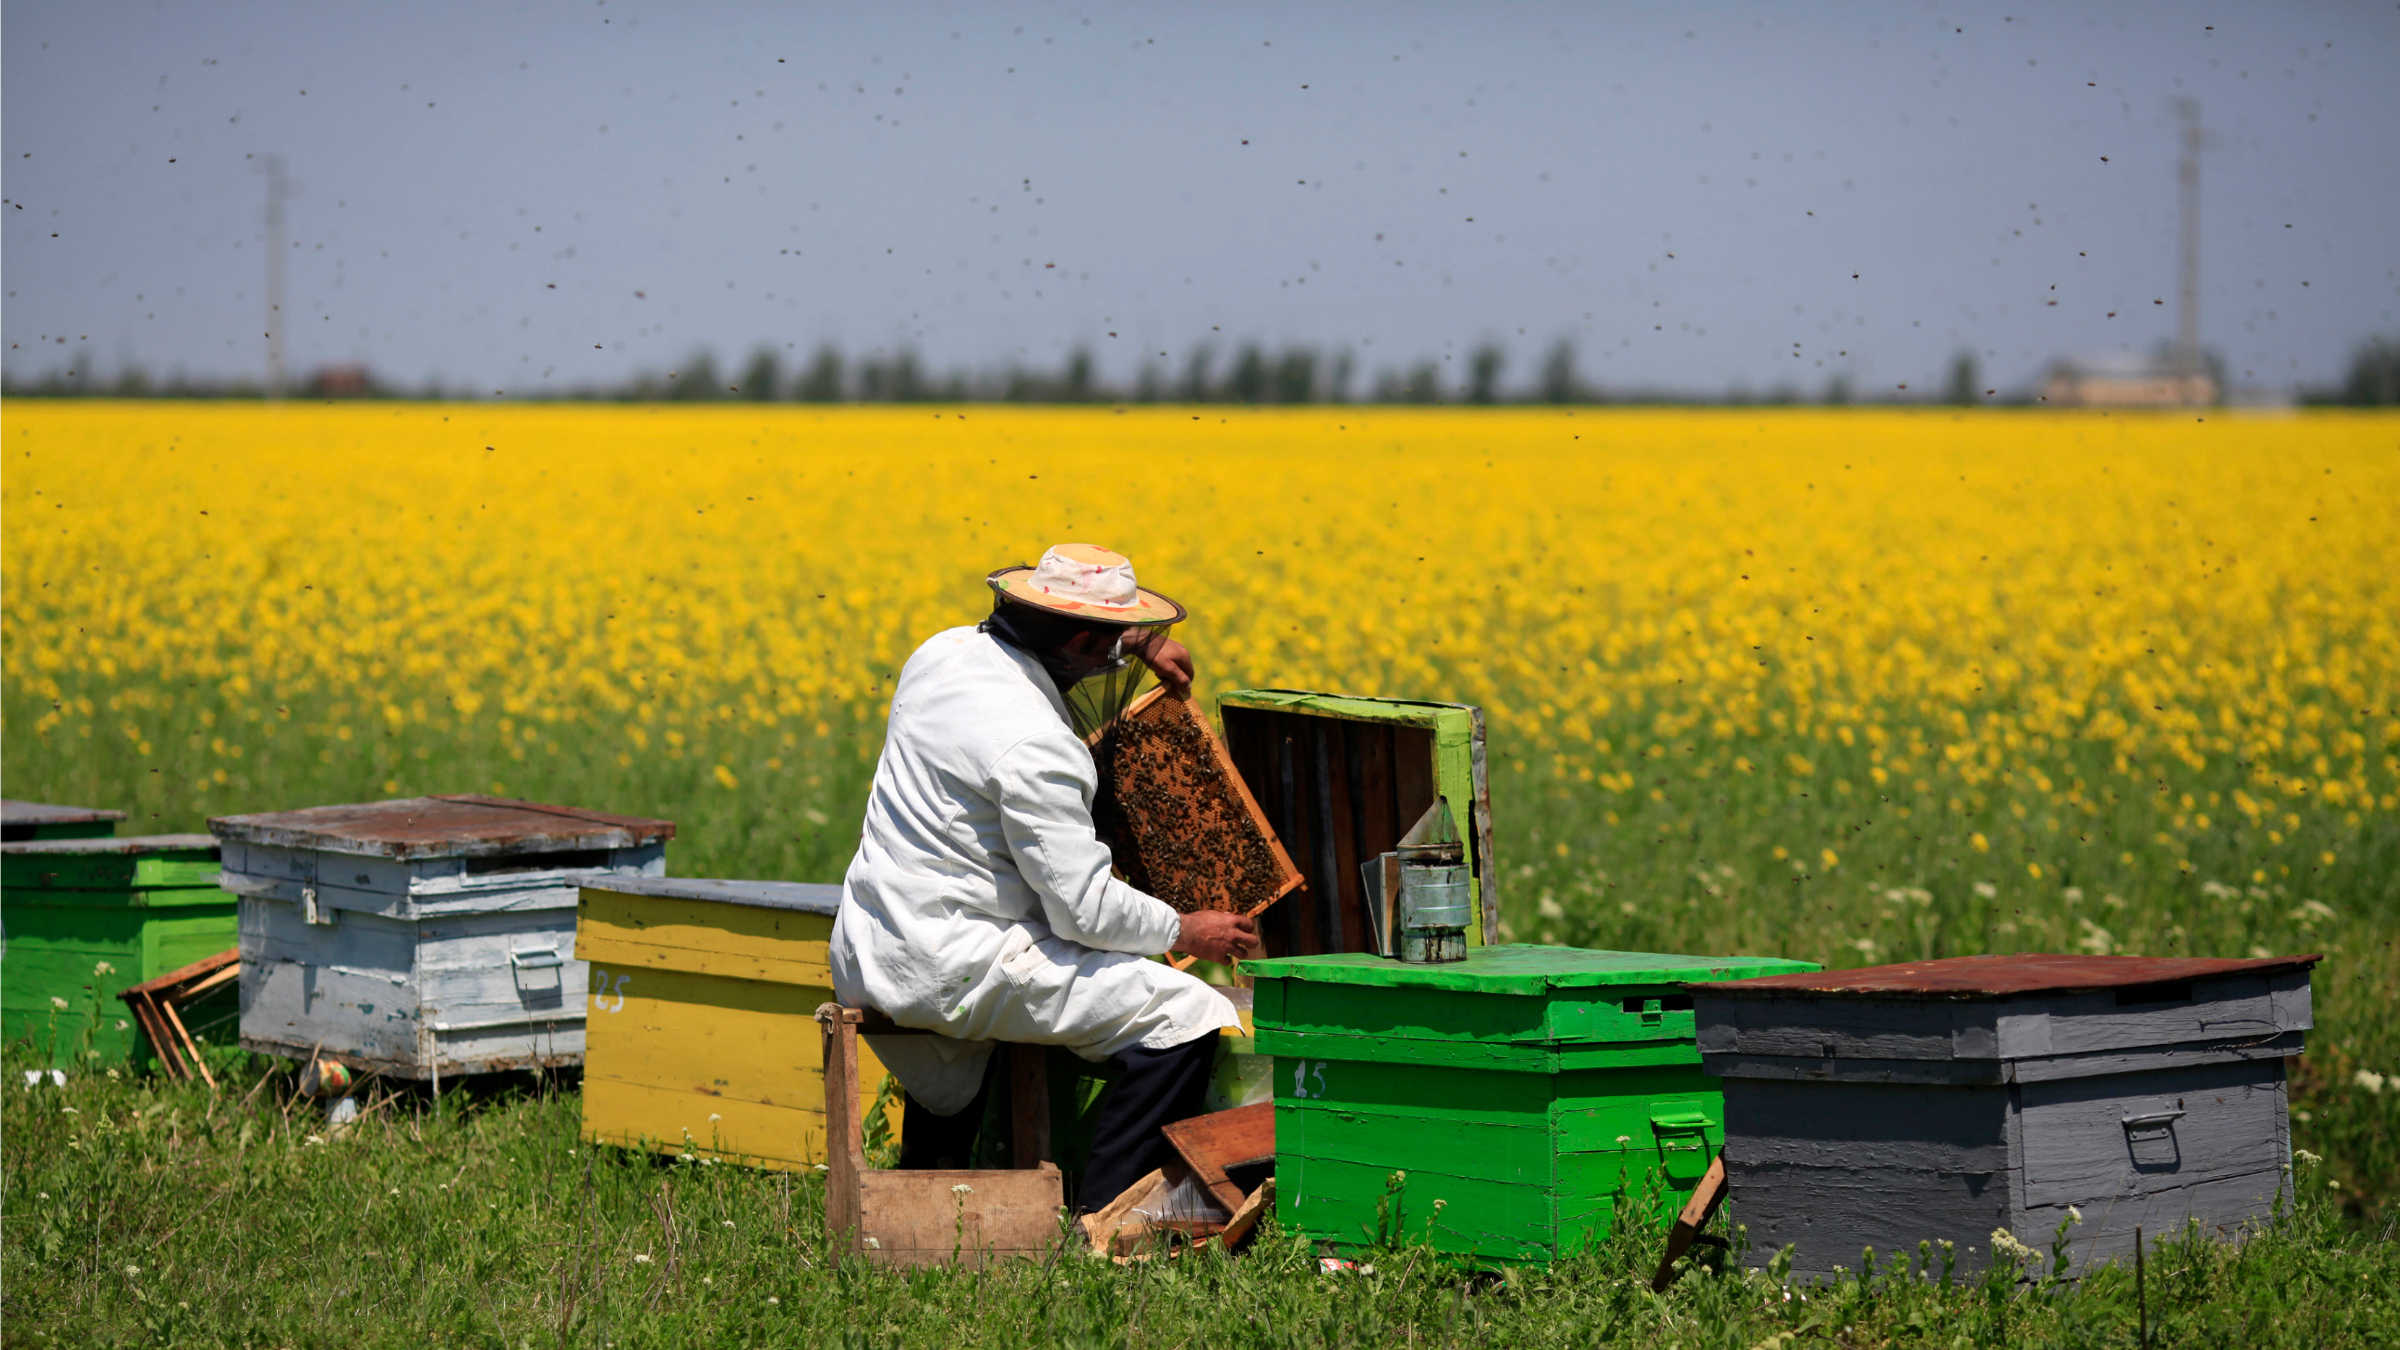 A beekeeper takes care of his hives in a field of rapeseed.